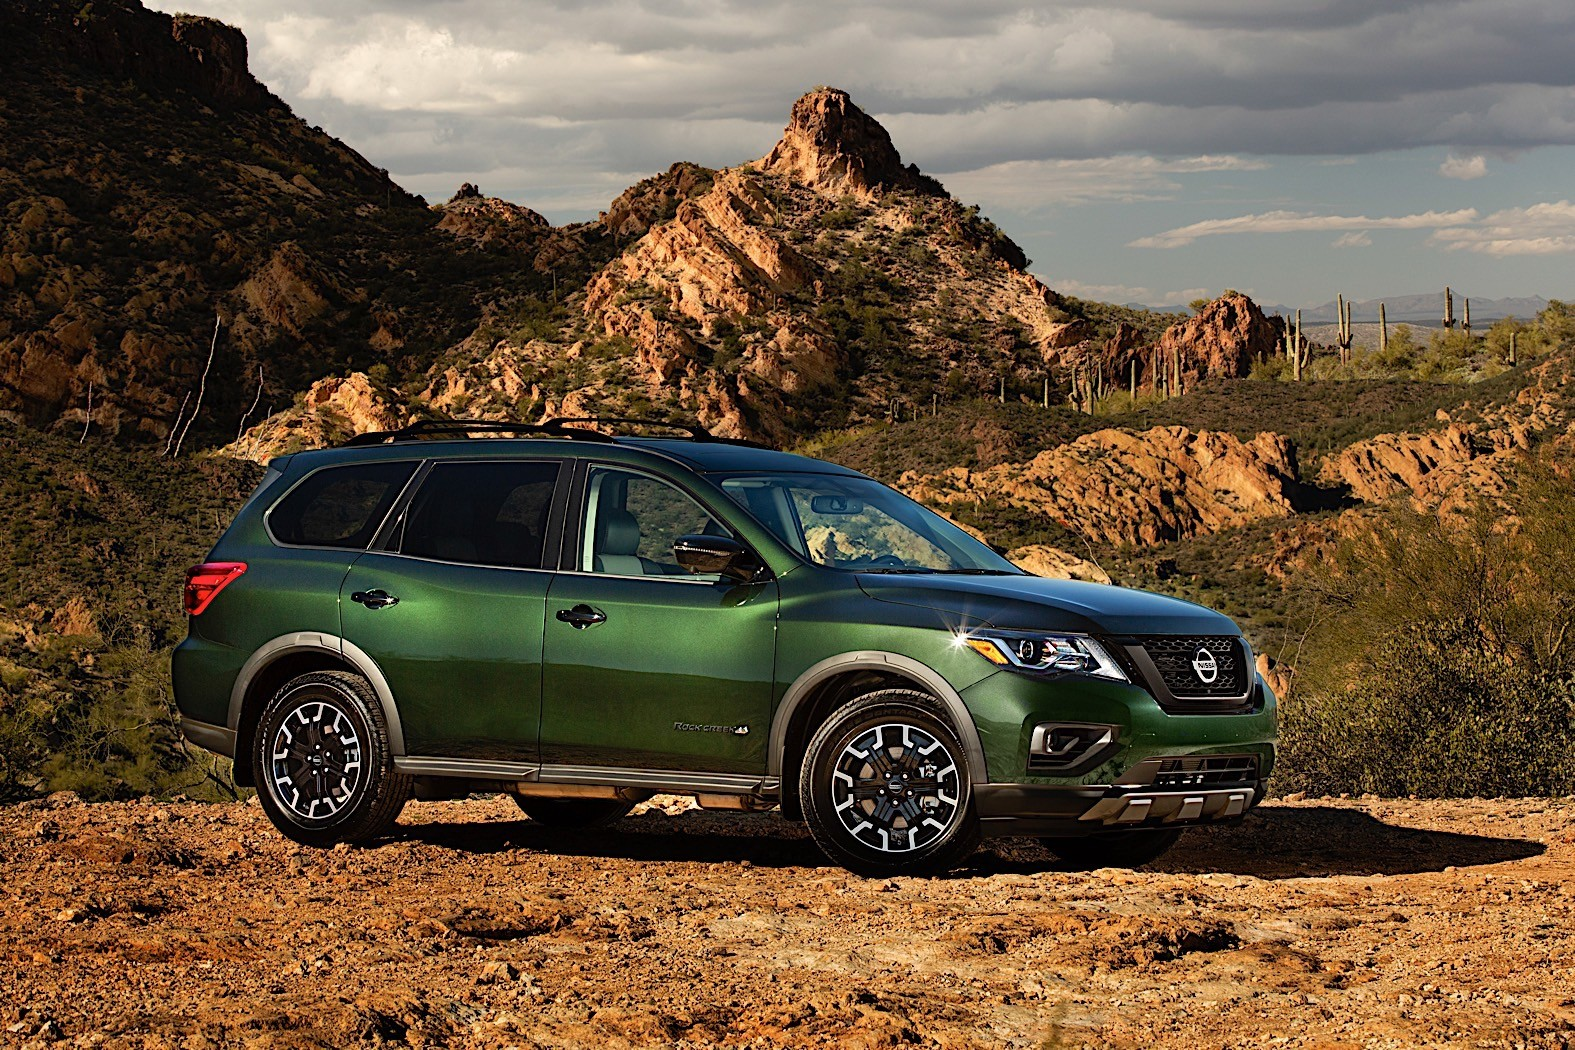 2019 Nissan Pathfinder Tweaked with the Rock Creek Package ...